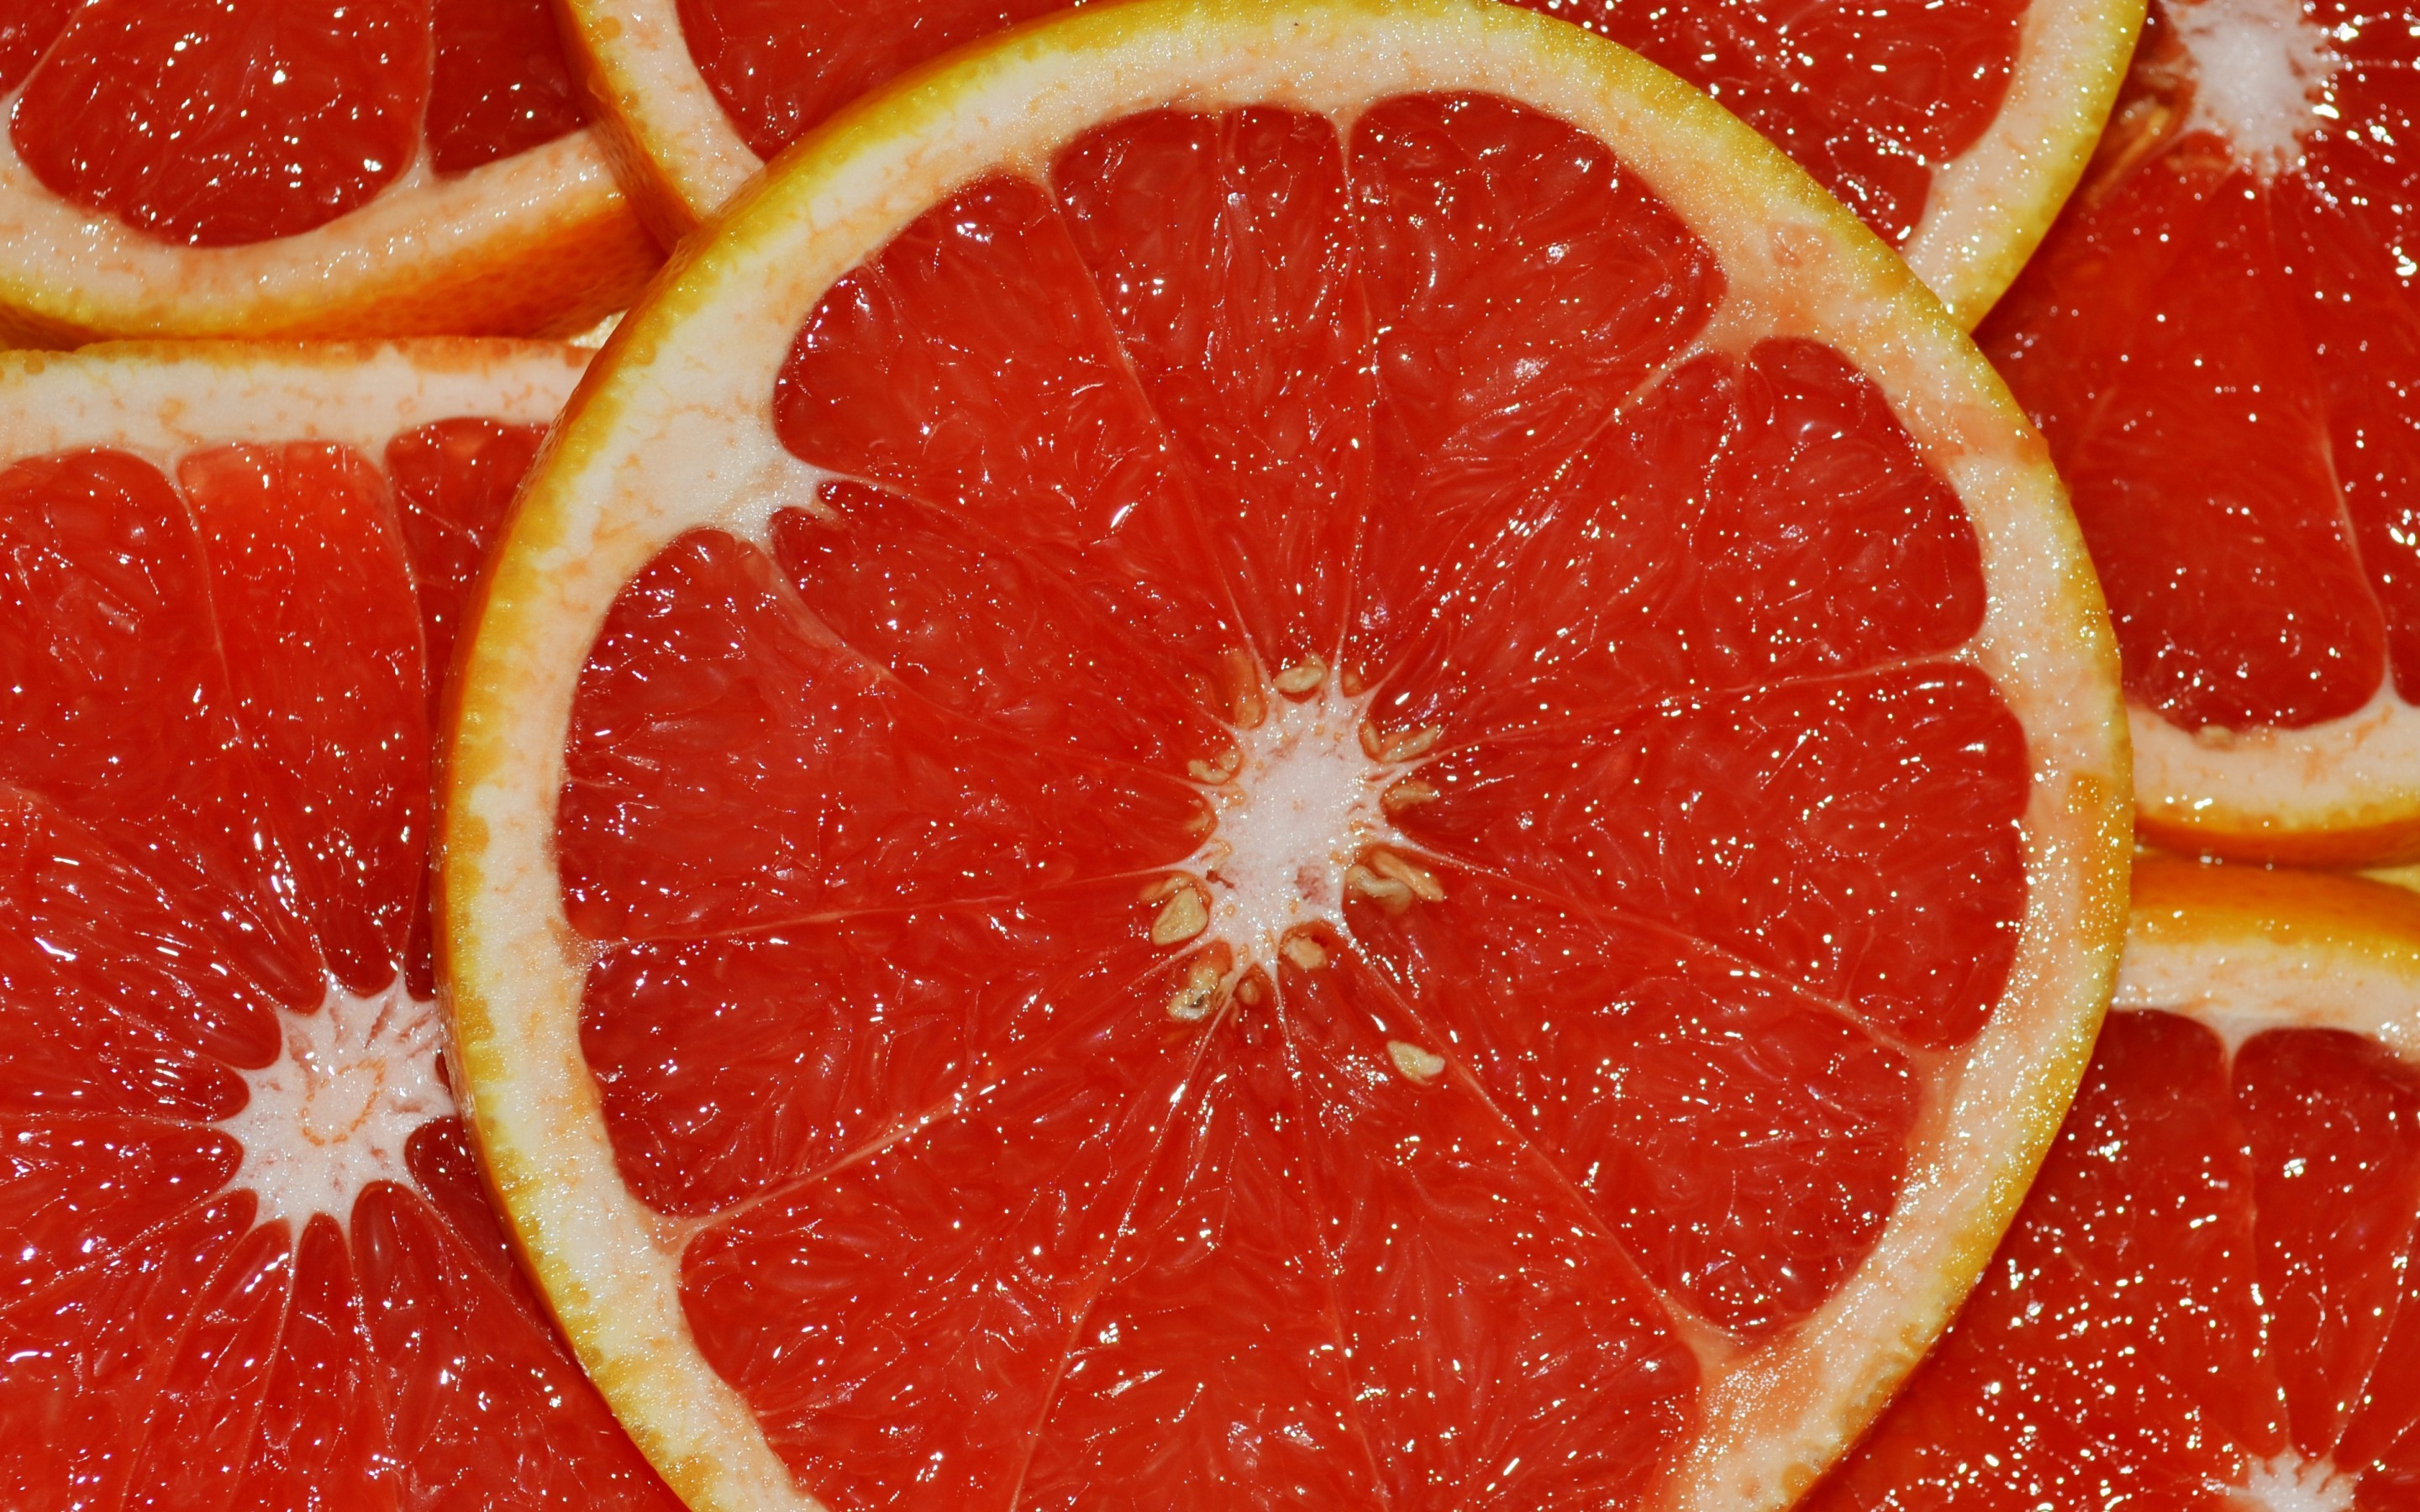 Real Hd Wallpapers 1080p Grapefruit Pics Full Hd Pictures